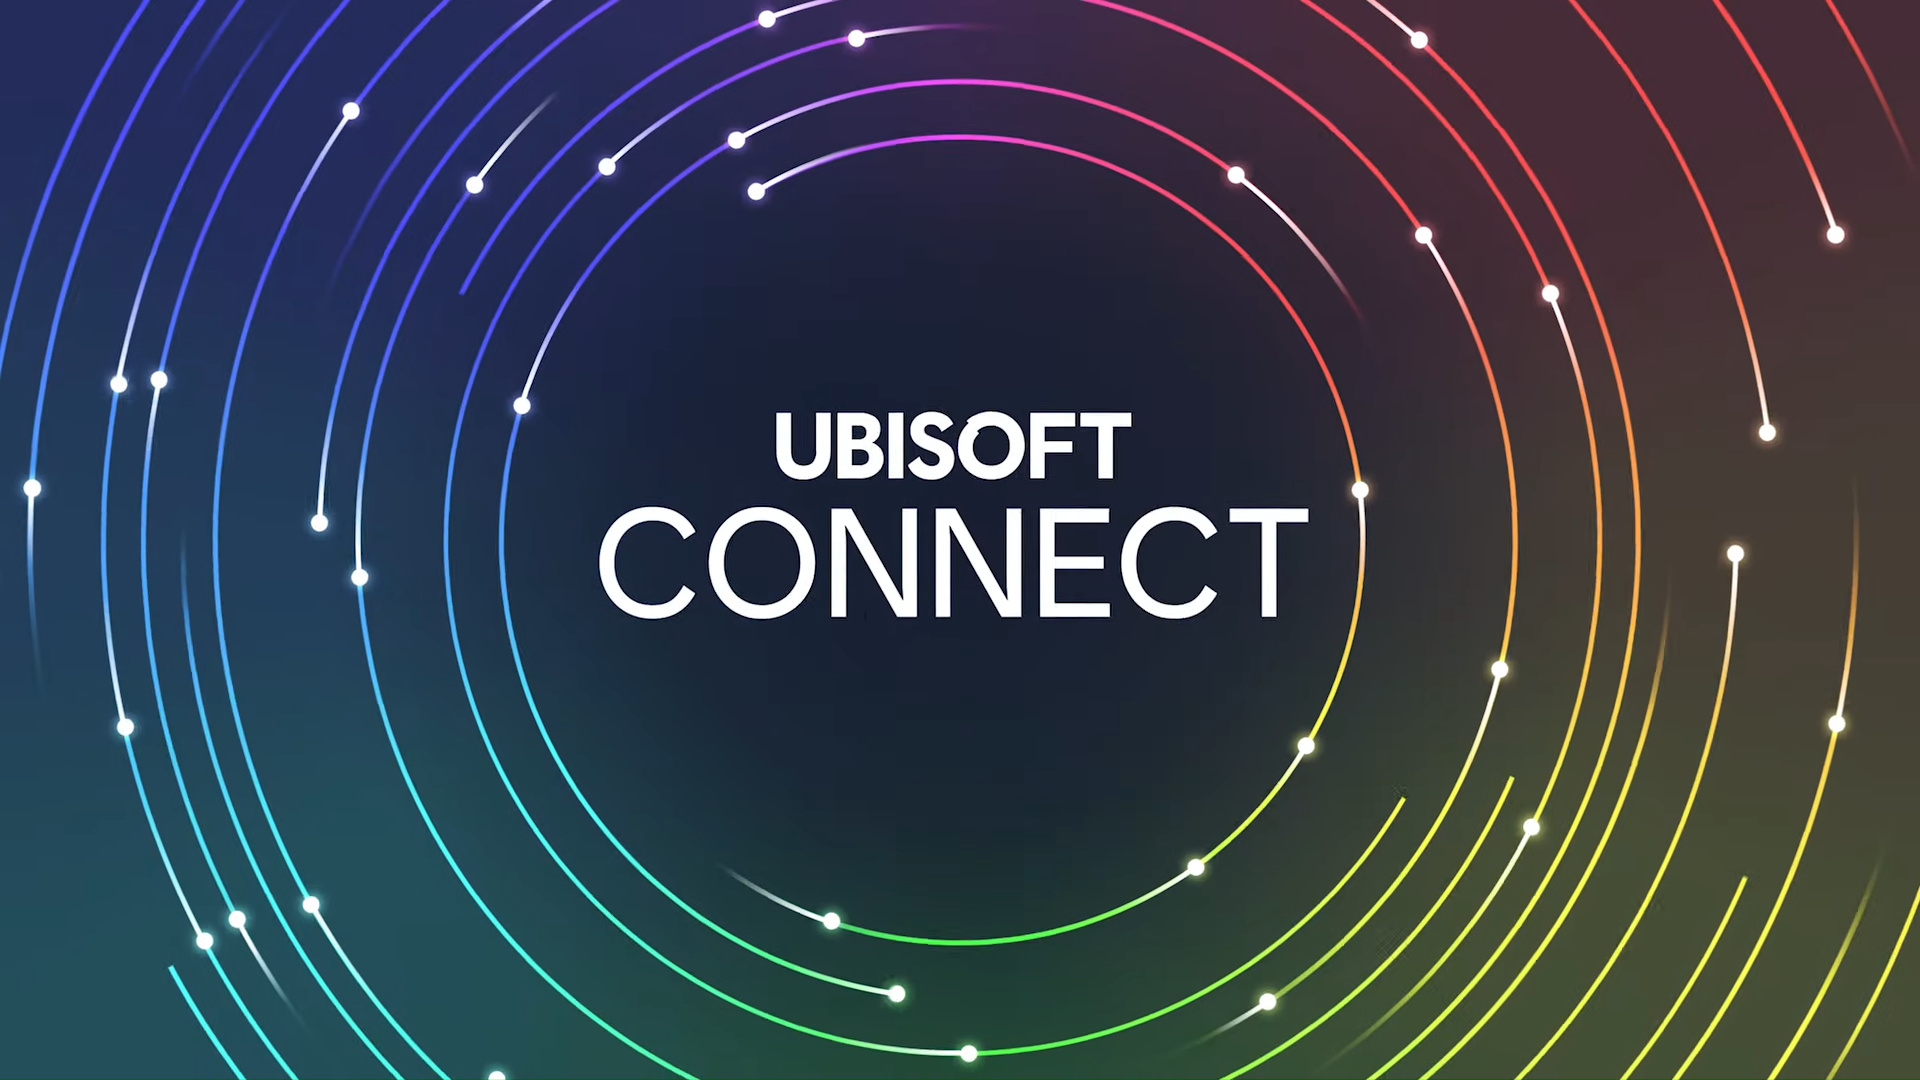 Ubisoft To Embrace Cross-Play And Cross-Progression For New Releases